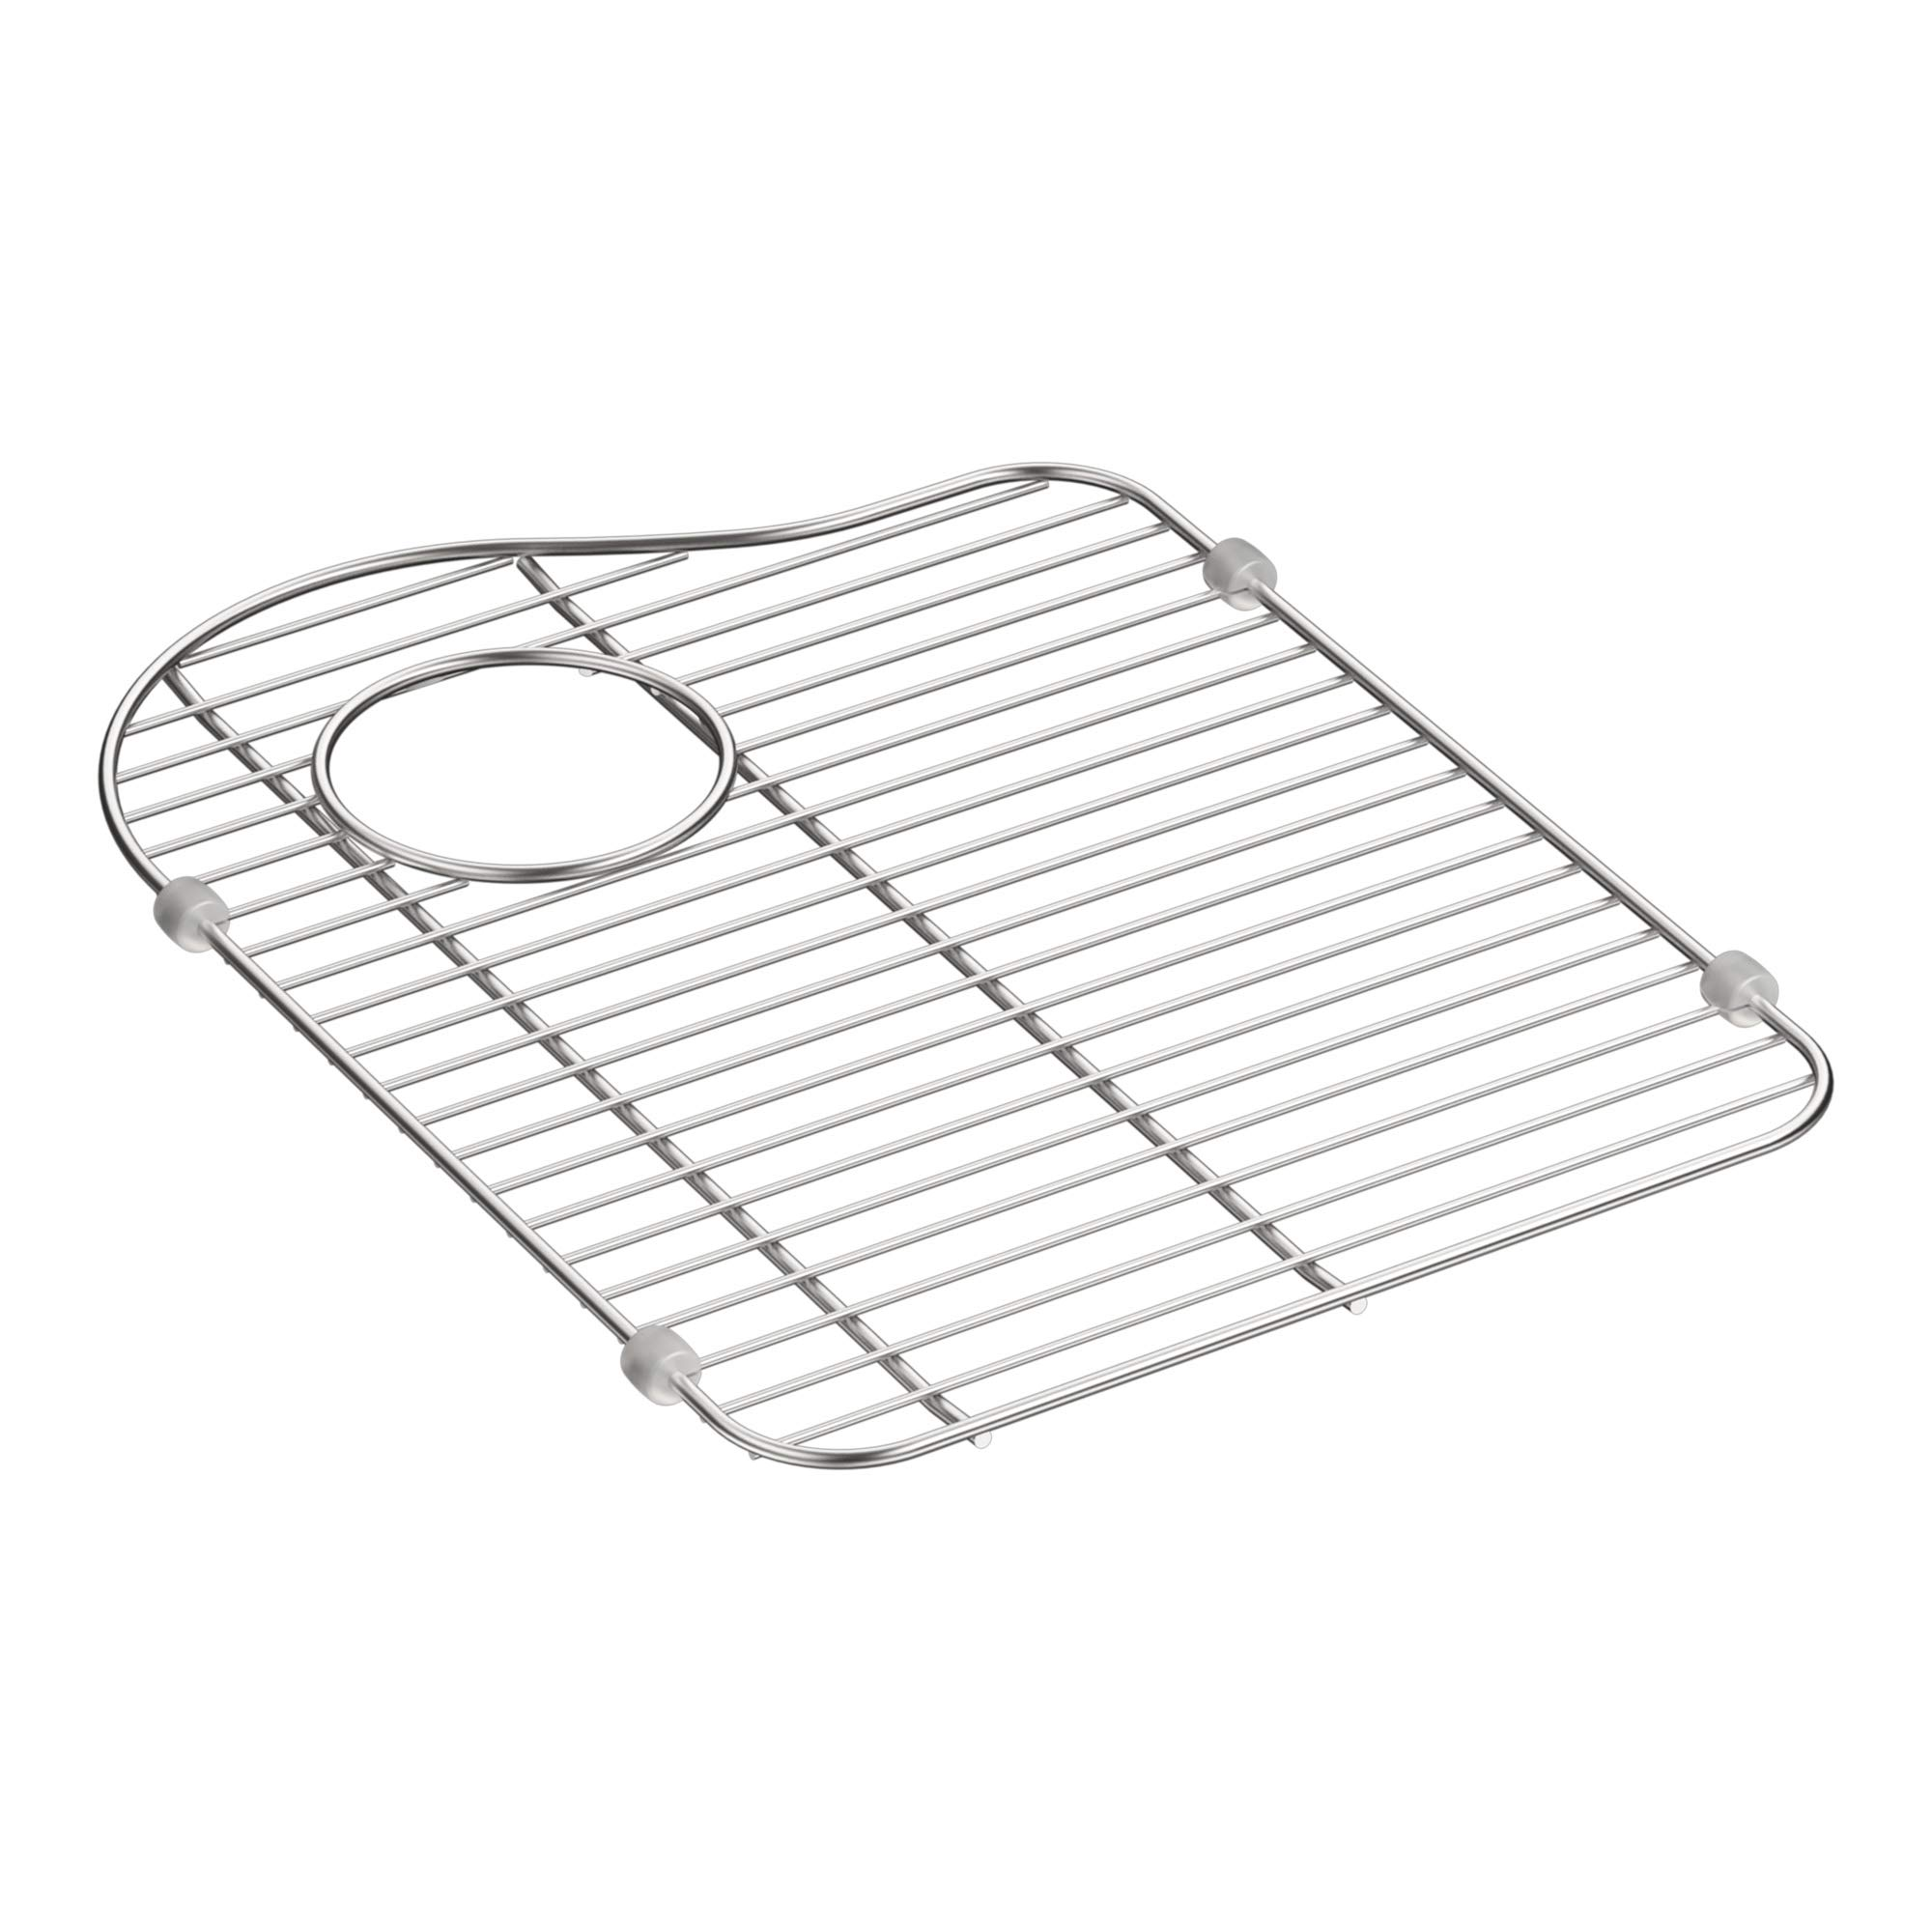 Kohler 5133-ST Hartland Stainless Steel Sink Rack for Left-Hand Bowl by Kohler